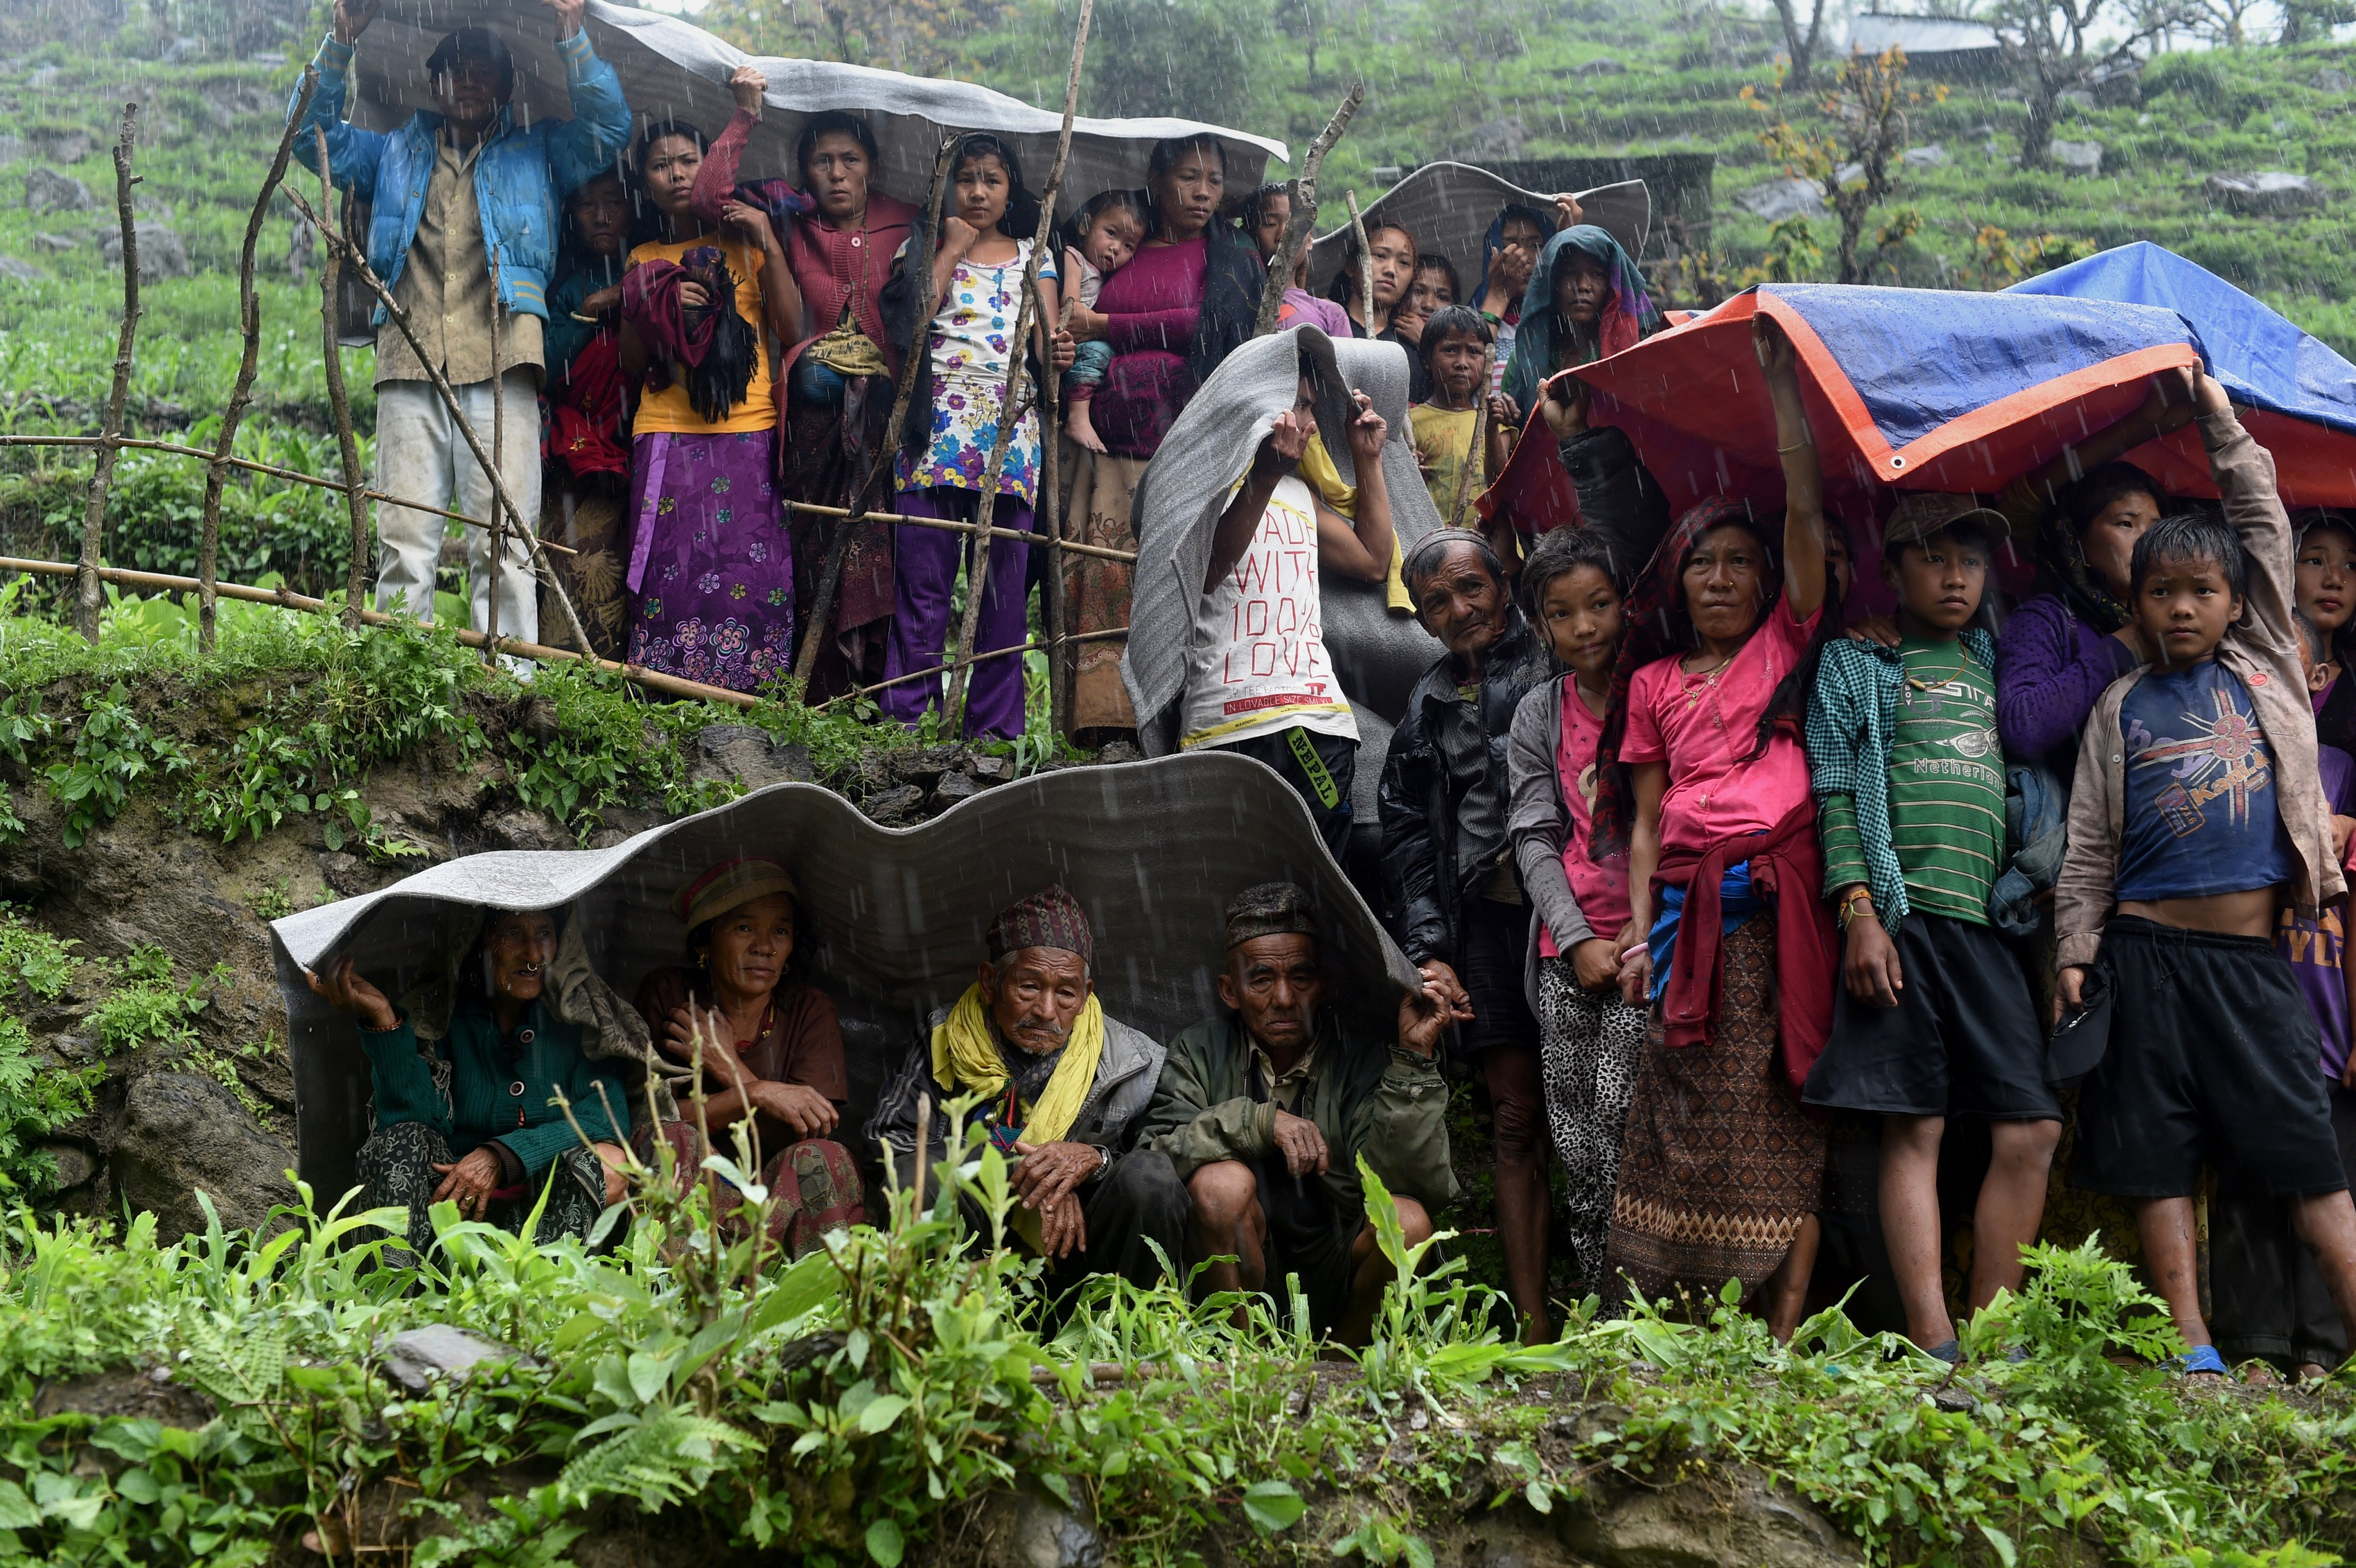 Nepalese villagers shelter from rain as an Indian Army helicopter delivers aid following an earthquake at Lapu in Gorkha on April 28, 2015. The impoverished country's leader said relief workers had still not reached many of the worst-hit areas.